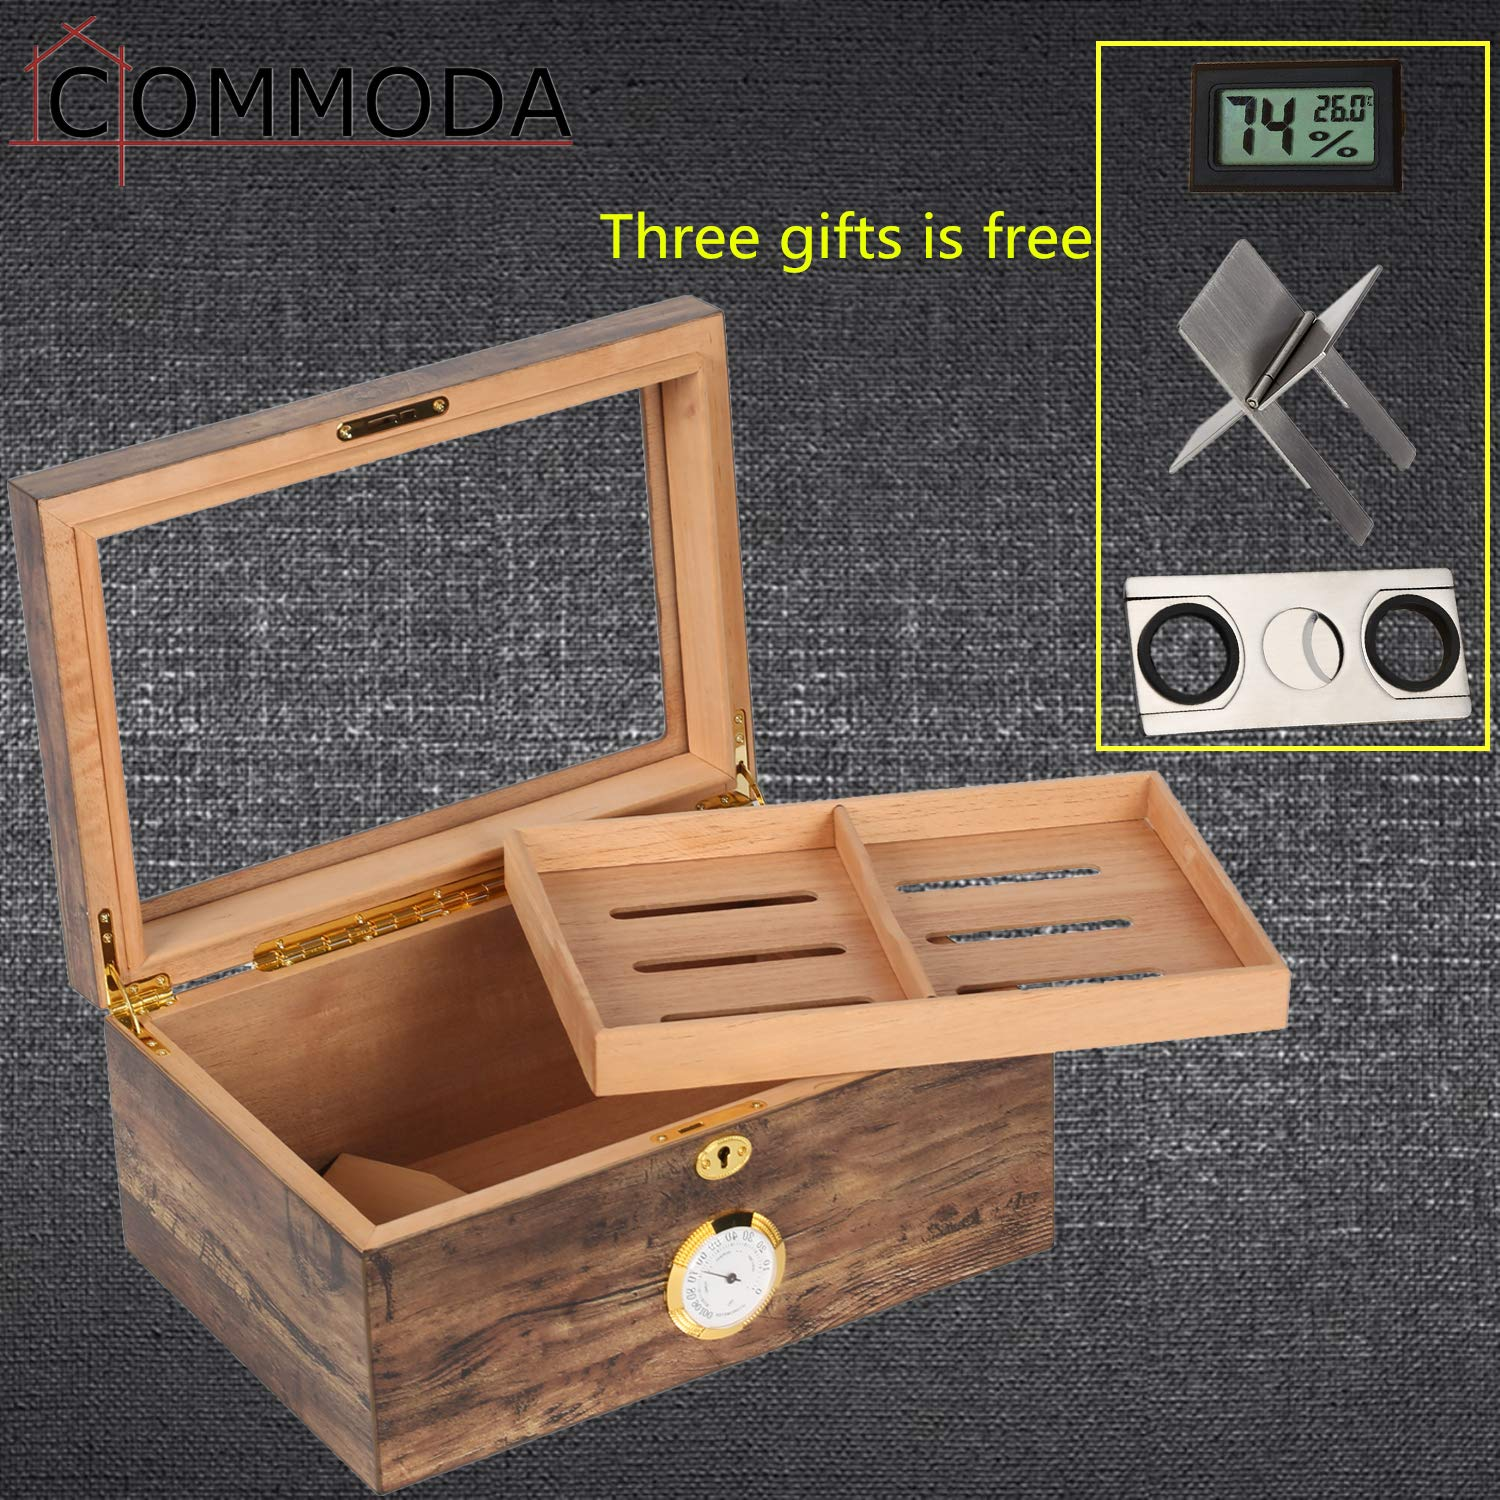 COMMODA Desktop Cigar Humidor Tempered Glasstop with Front Mounted Hygrometer and Humidifier, Cedar Lined Storage Box Spanish Cedar Tray with Divider, Holds 100 Cigars Cigar Free Cutter and Rack by COMMODA (Image #4)